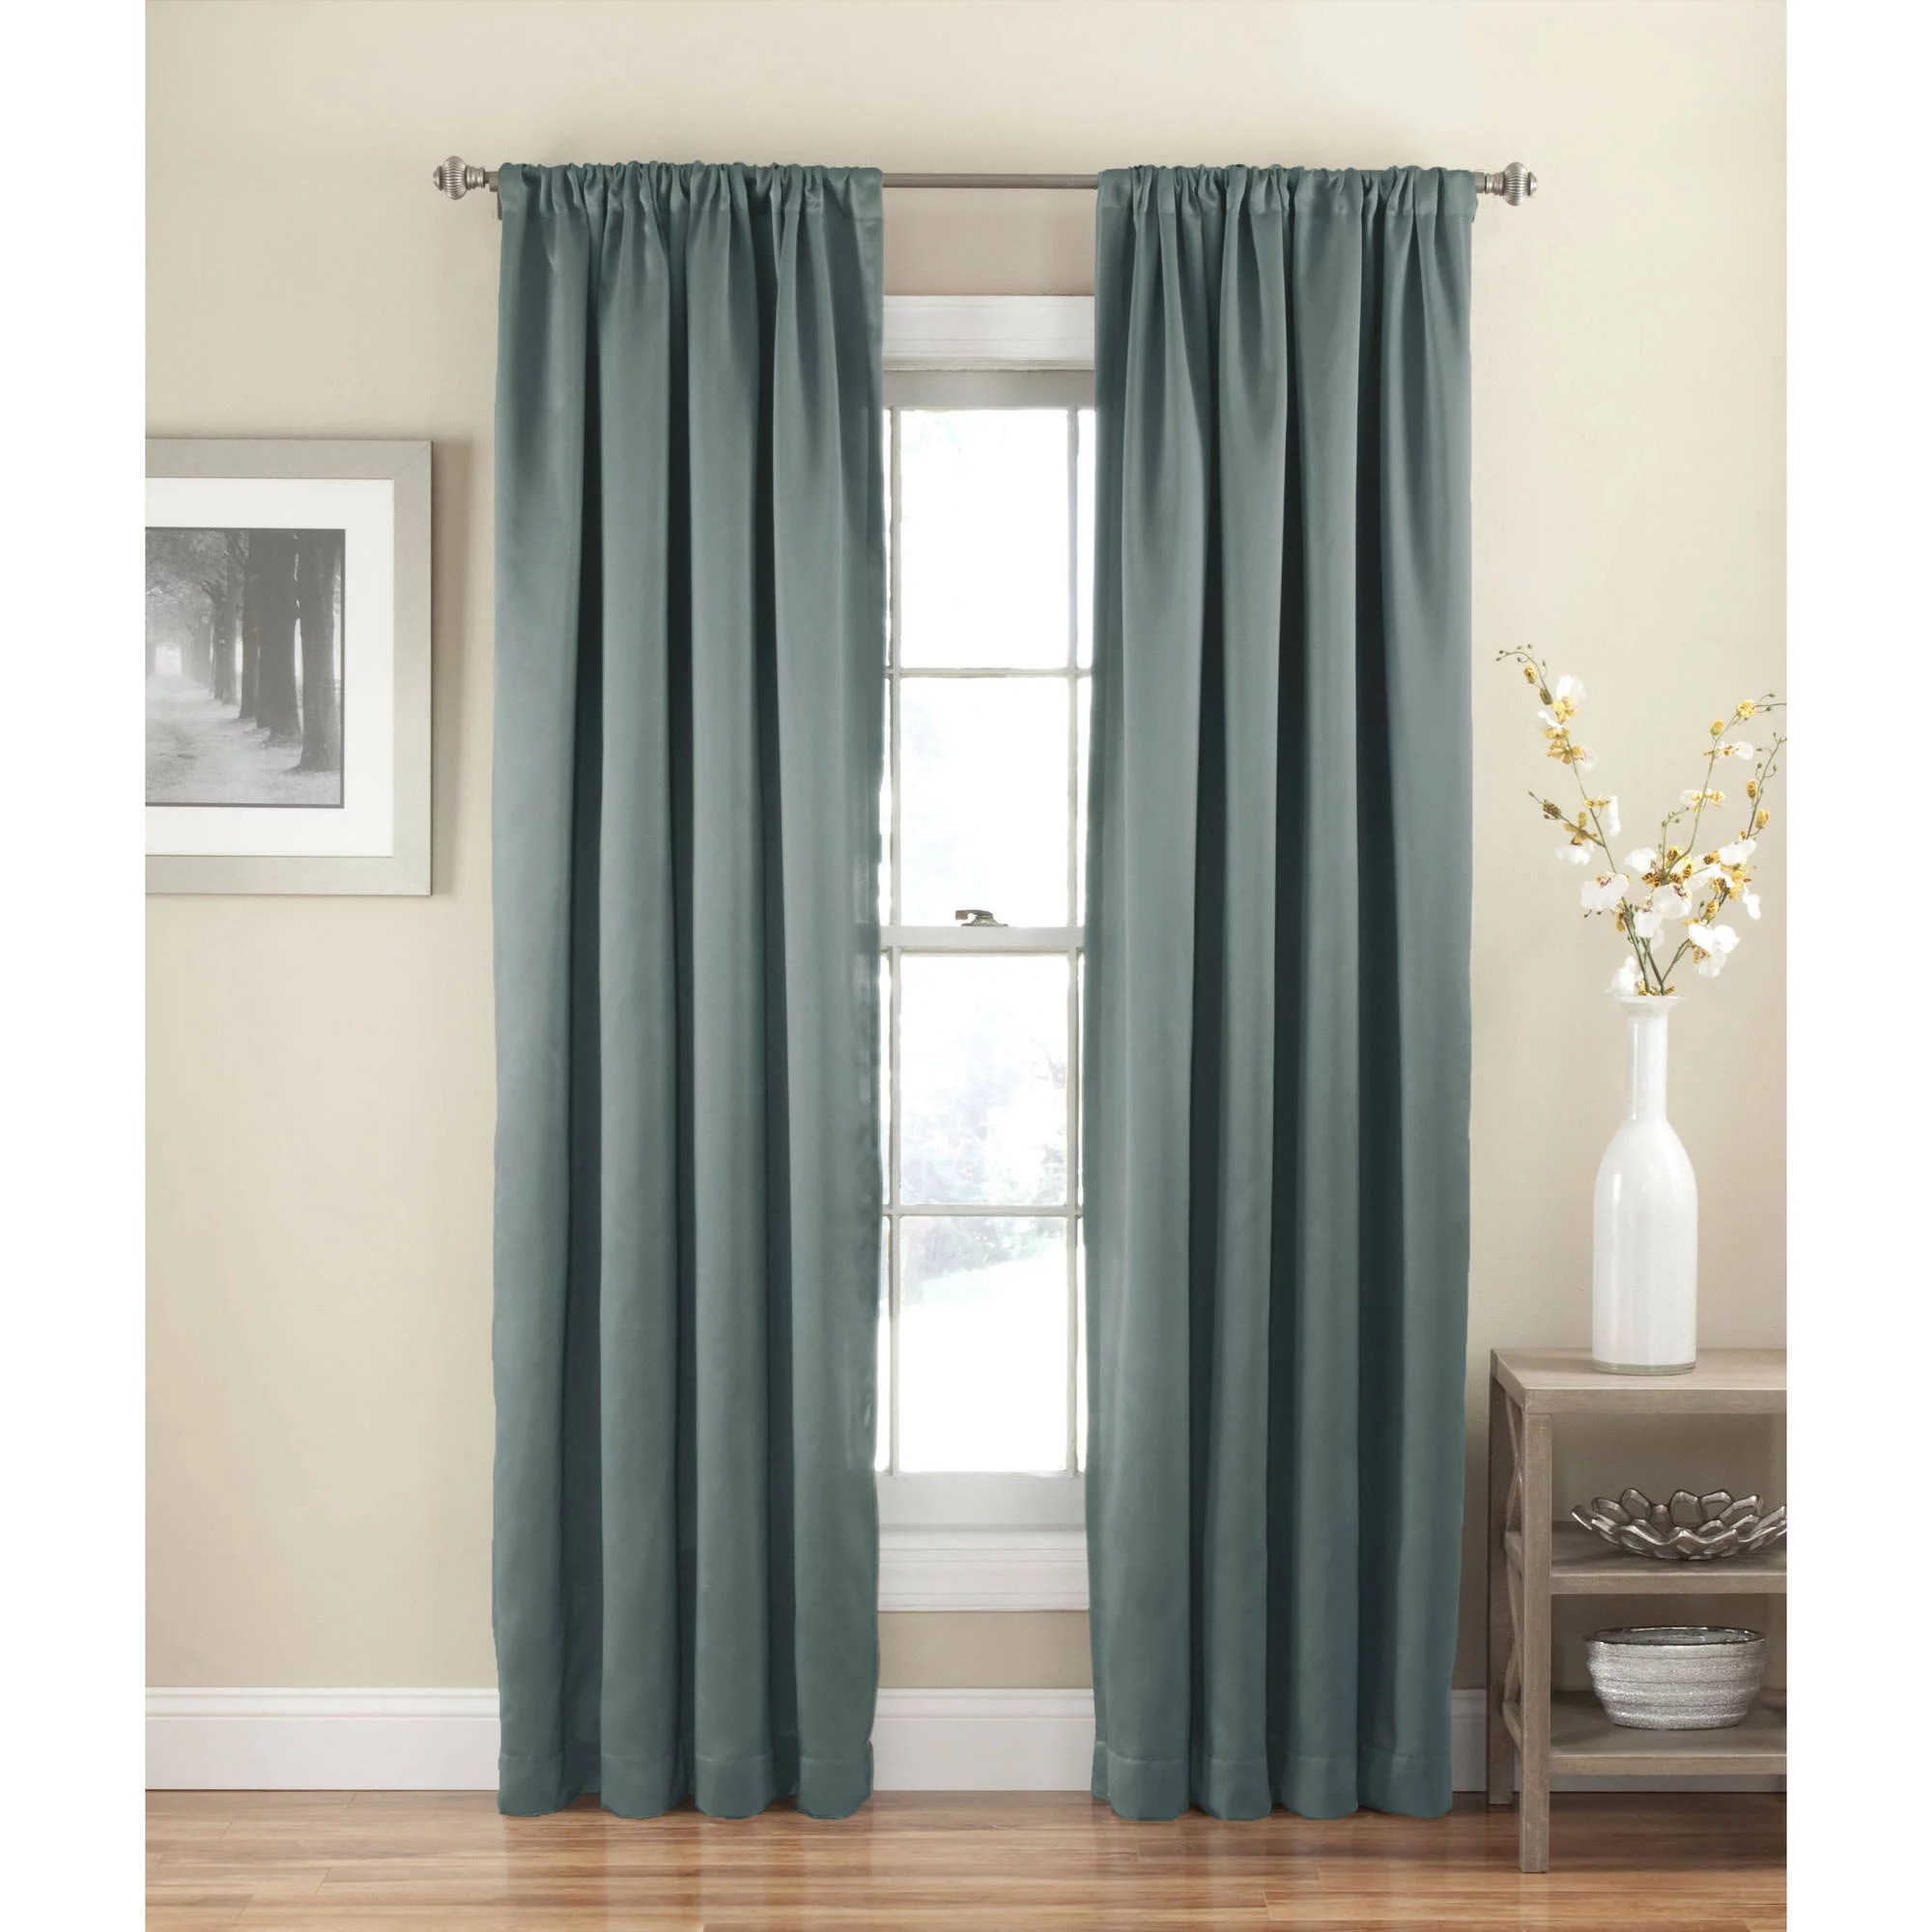 Walmart Thermal Curtains Eclipse Arbor Blackout Window Curtain Panel Walmart